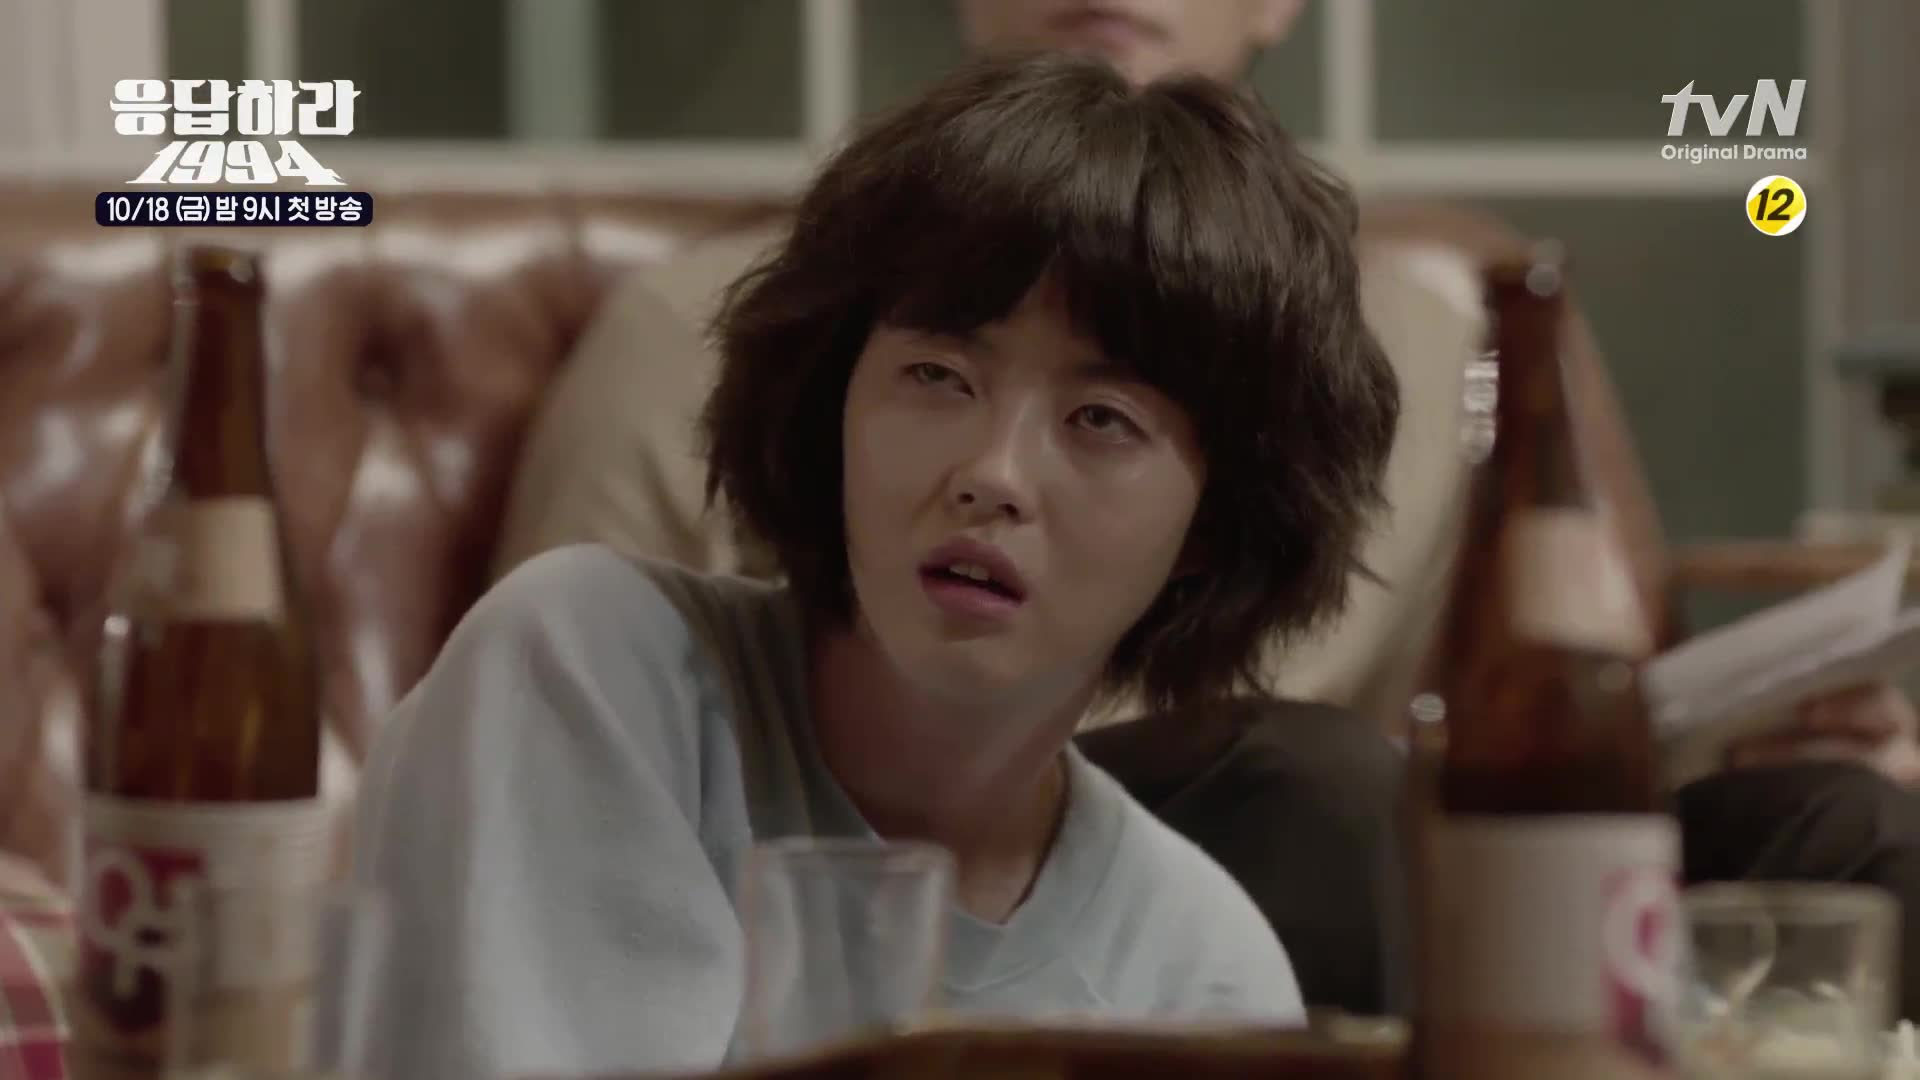 Reply 1994 Wink NaJeong: Reply 1994